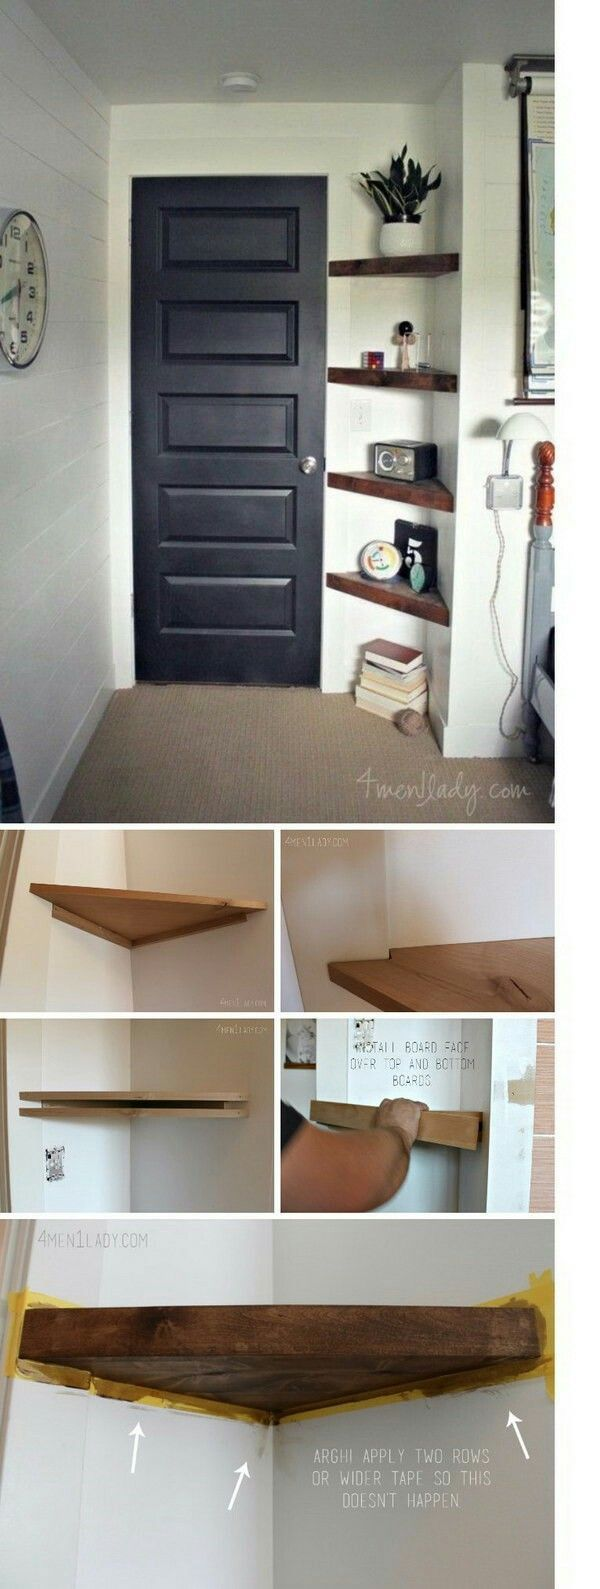 Superbe Best 25+ Small Corner Decor Ideas On Pinterest | Small Entryway Decor, Small  Corner And Small Upstairs Hallway